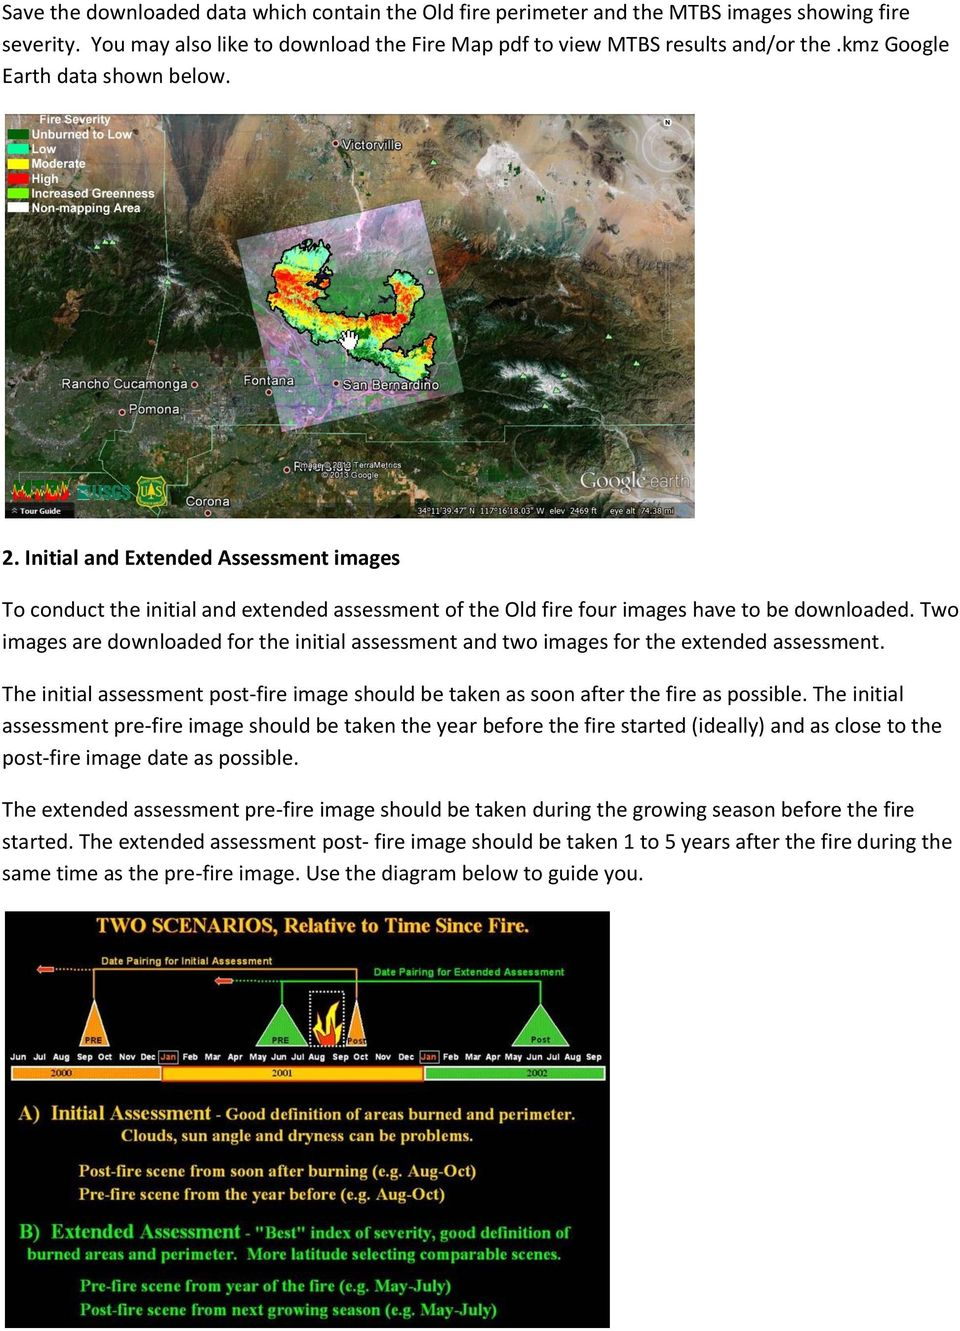 Two images are downloaded for the initial assessment and two images for the extended assessment. The initial assessment post-fire image should be taken as soon after the fire as possible.